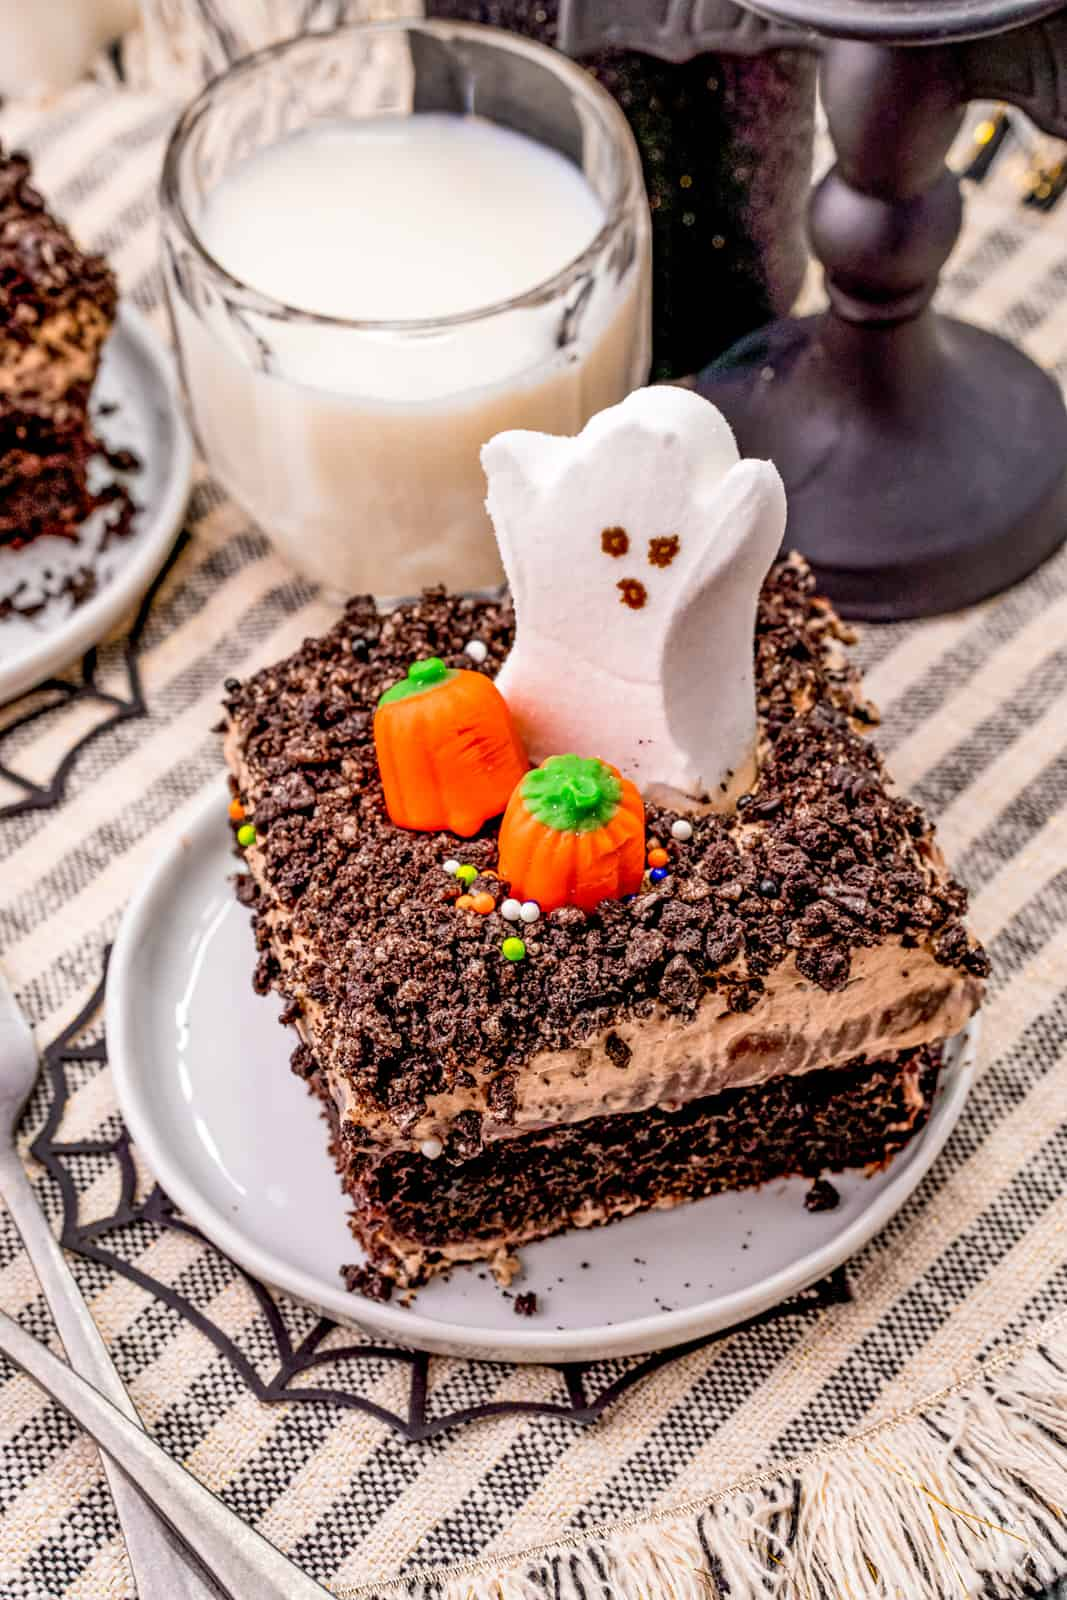 Overhead angled photo of a slice of cake on white plate decorated for Halloween with milk in back.